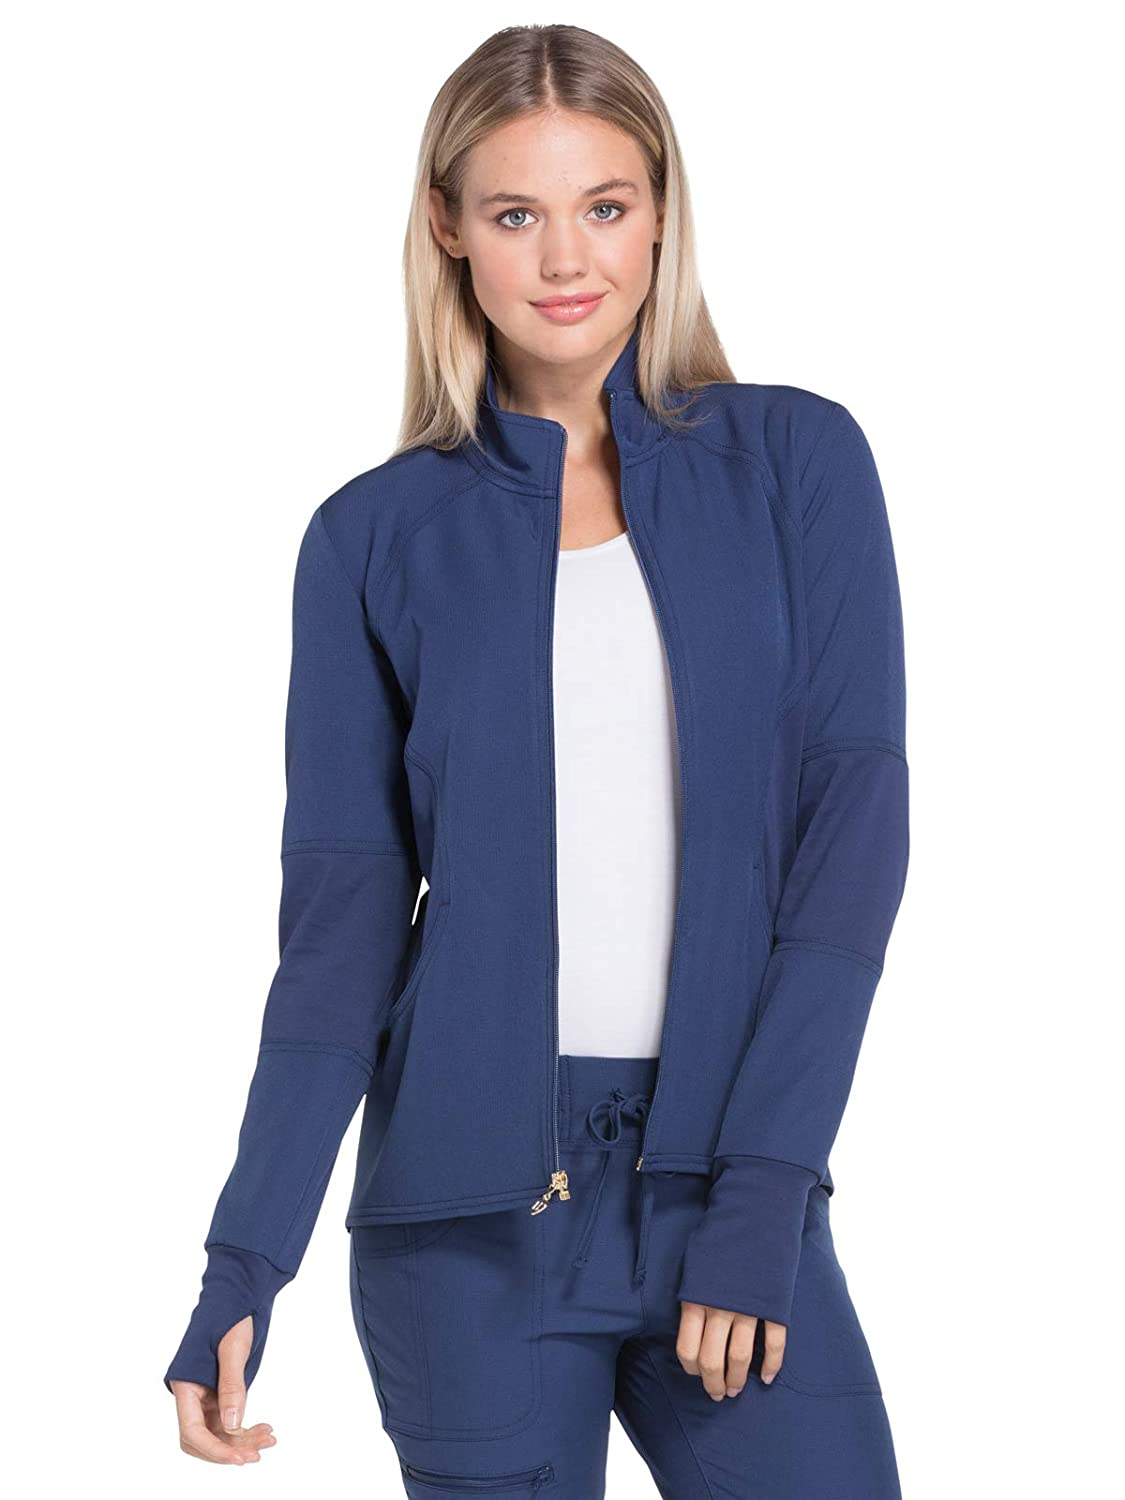 6393c985cbc Heart Soul HS315 Women's Zip Front Warm-Up Solid Scrub Jacket: Amazon.ca:  Clothing & Accessories